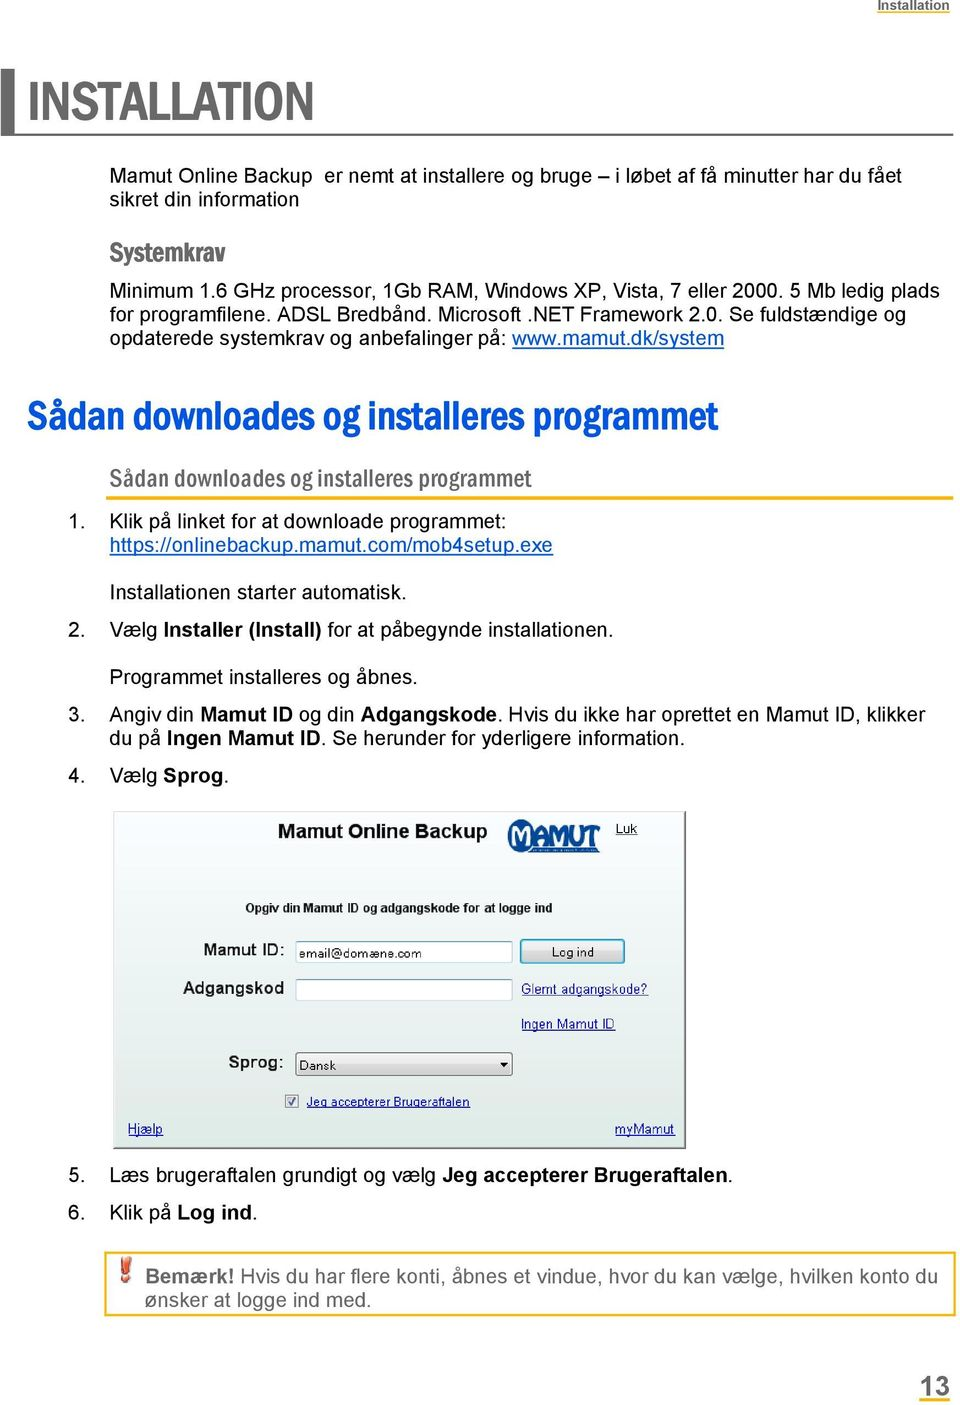 mamut.dk/system Sådan downloades og installeres programmet Sådan downloades og installeres programmet 1. Klik på linket for at downloade programmet: https://onlinebackup.mamut.com/mob4setup.